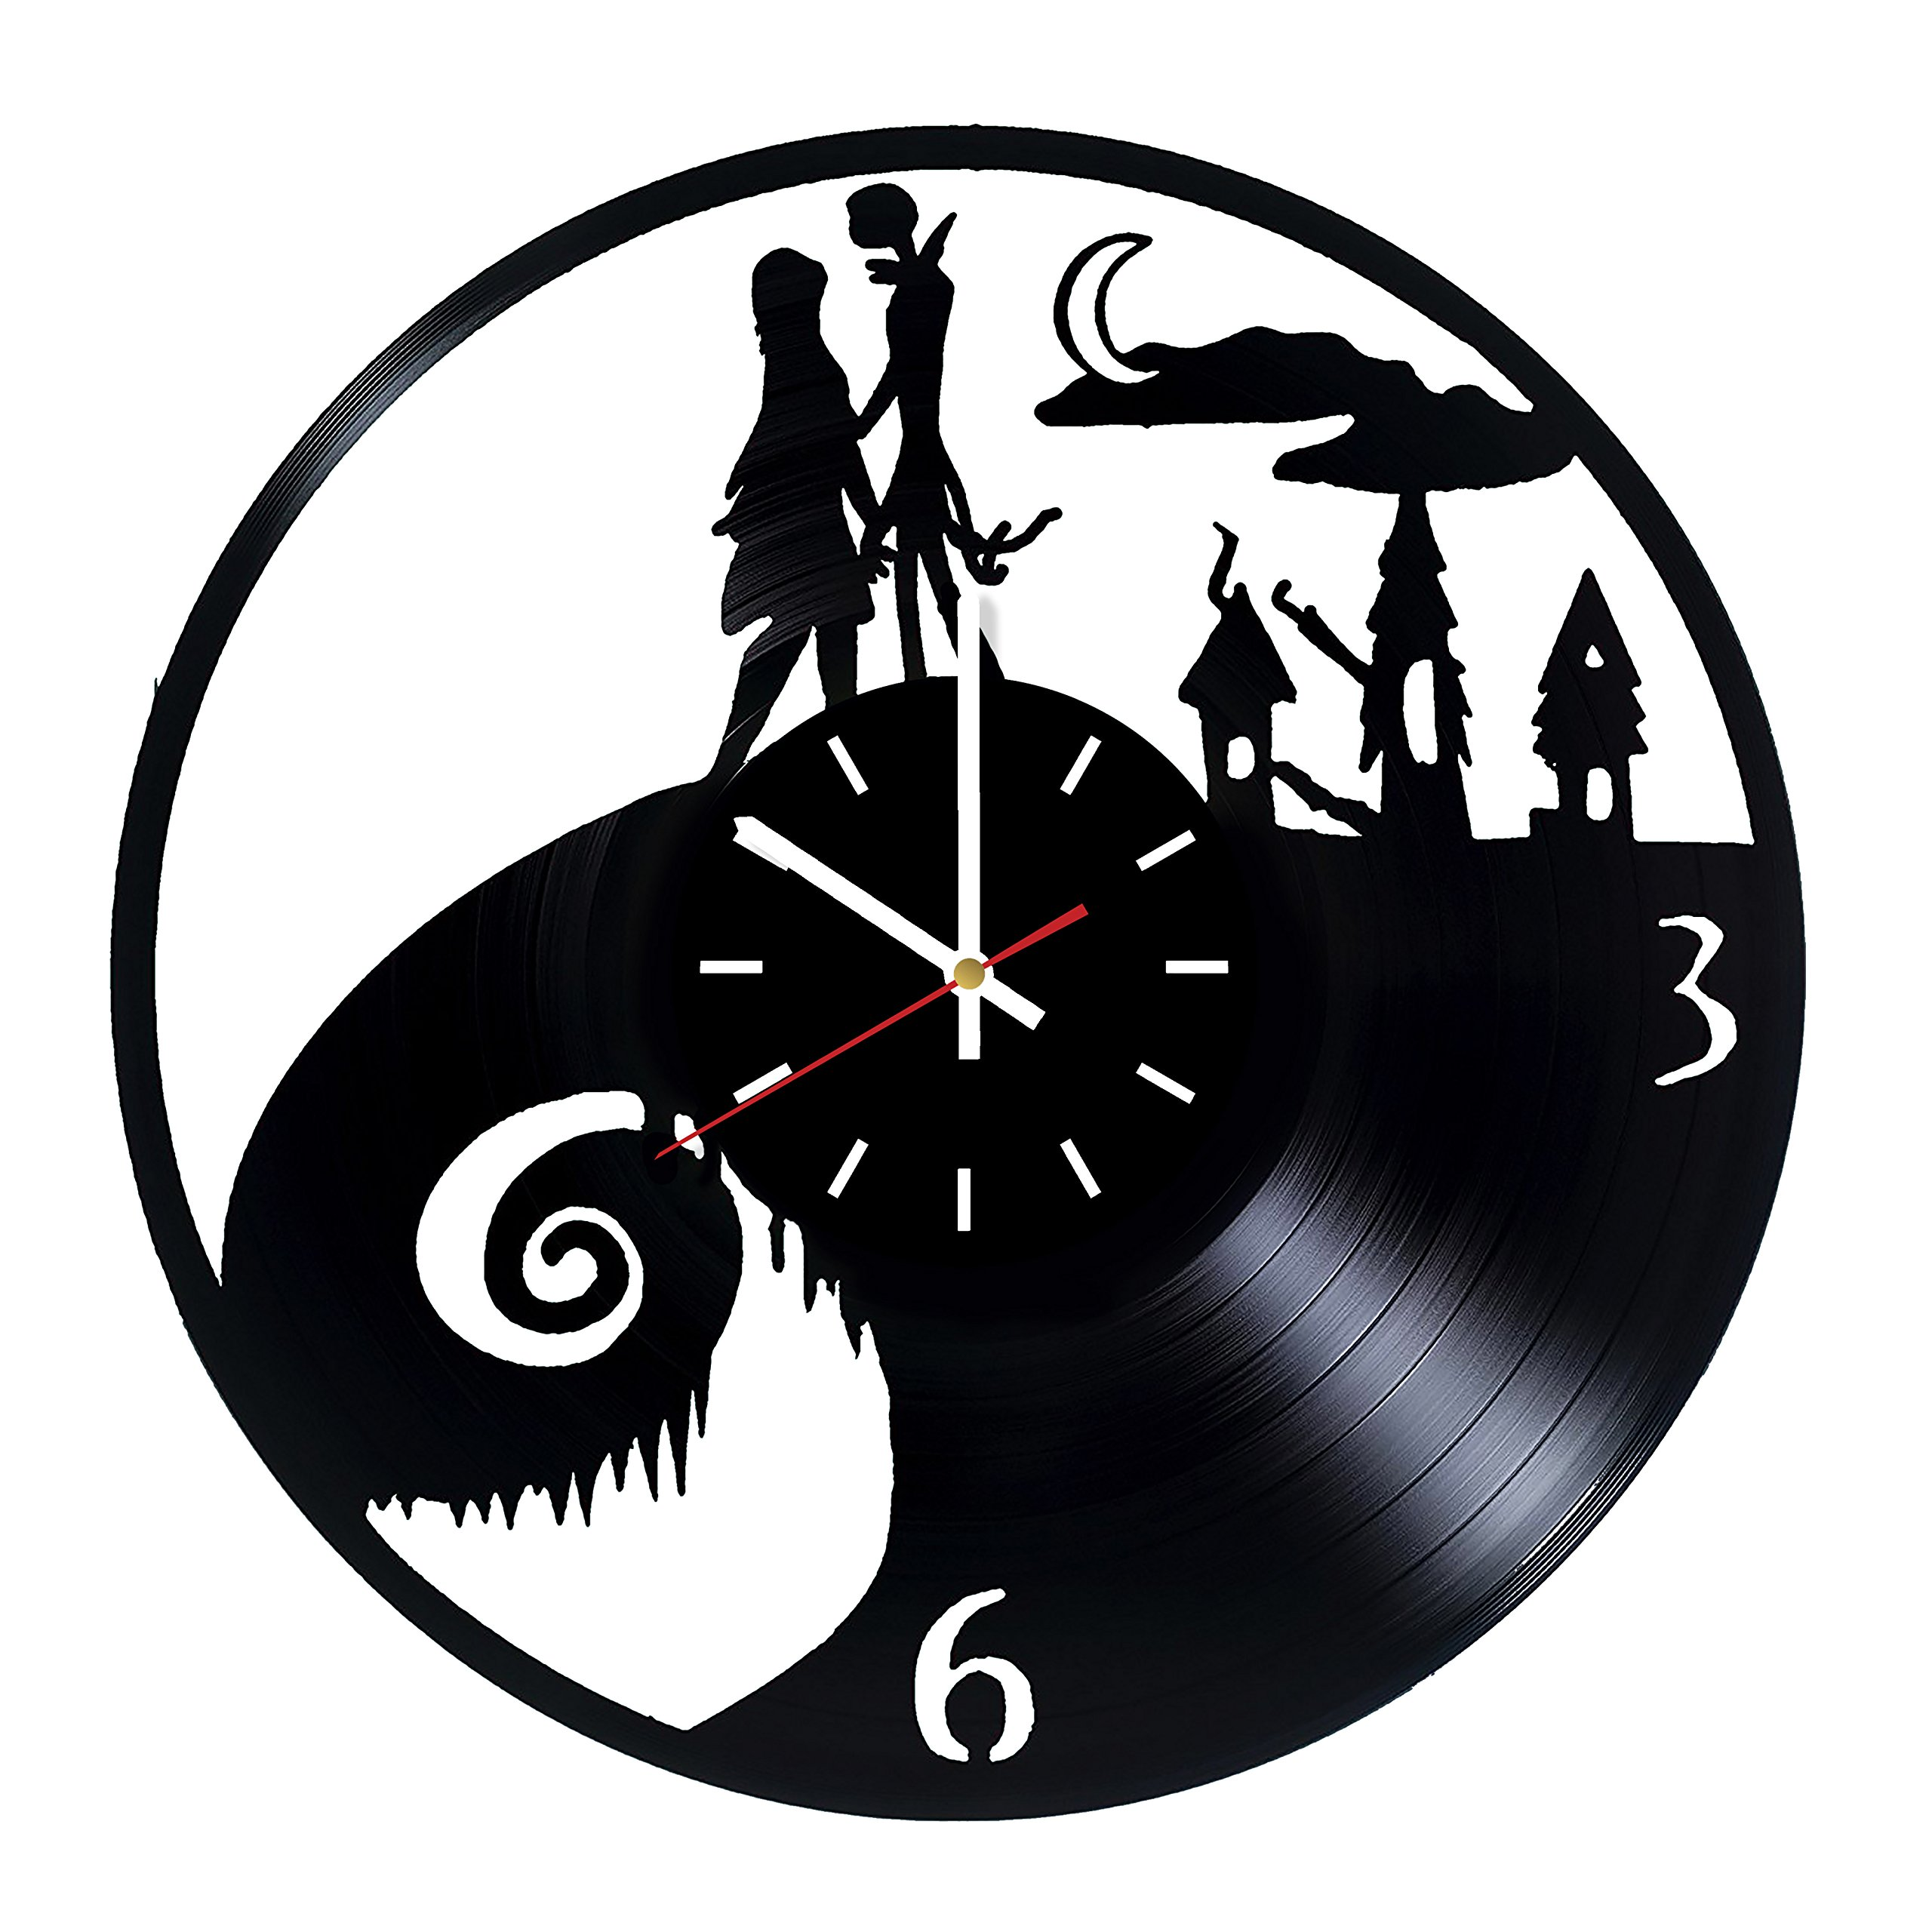 Nightmare Before Christmas Jack and Sally Vinyl Record Wall Clock - Kids room or Nursery wall decor - Gift ideas for kids, siblings, children - Animation Cartoon Unique Art Design